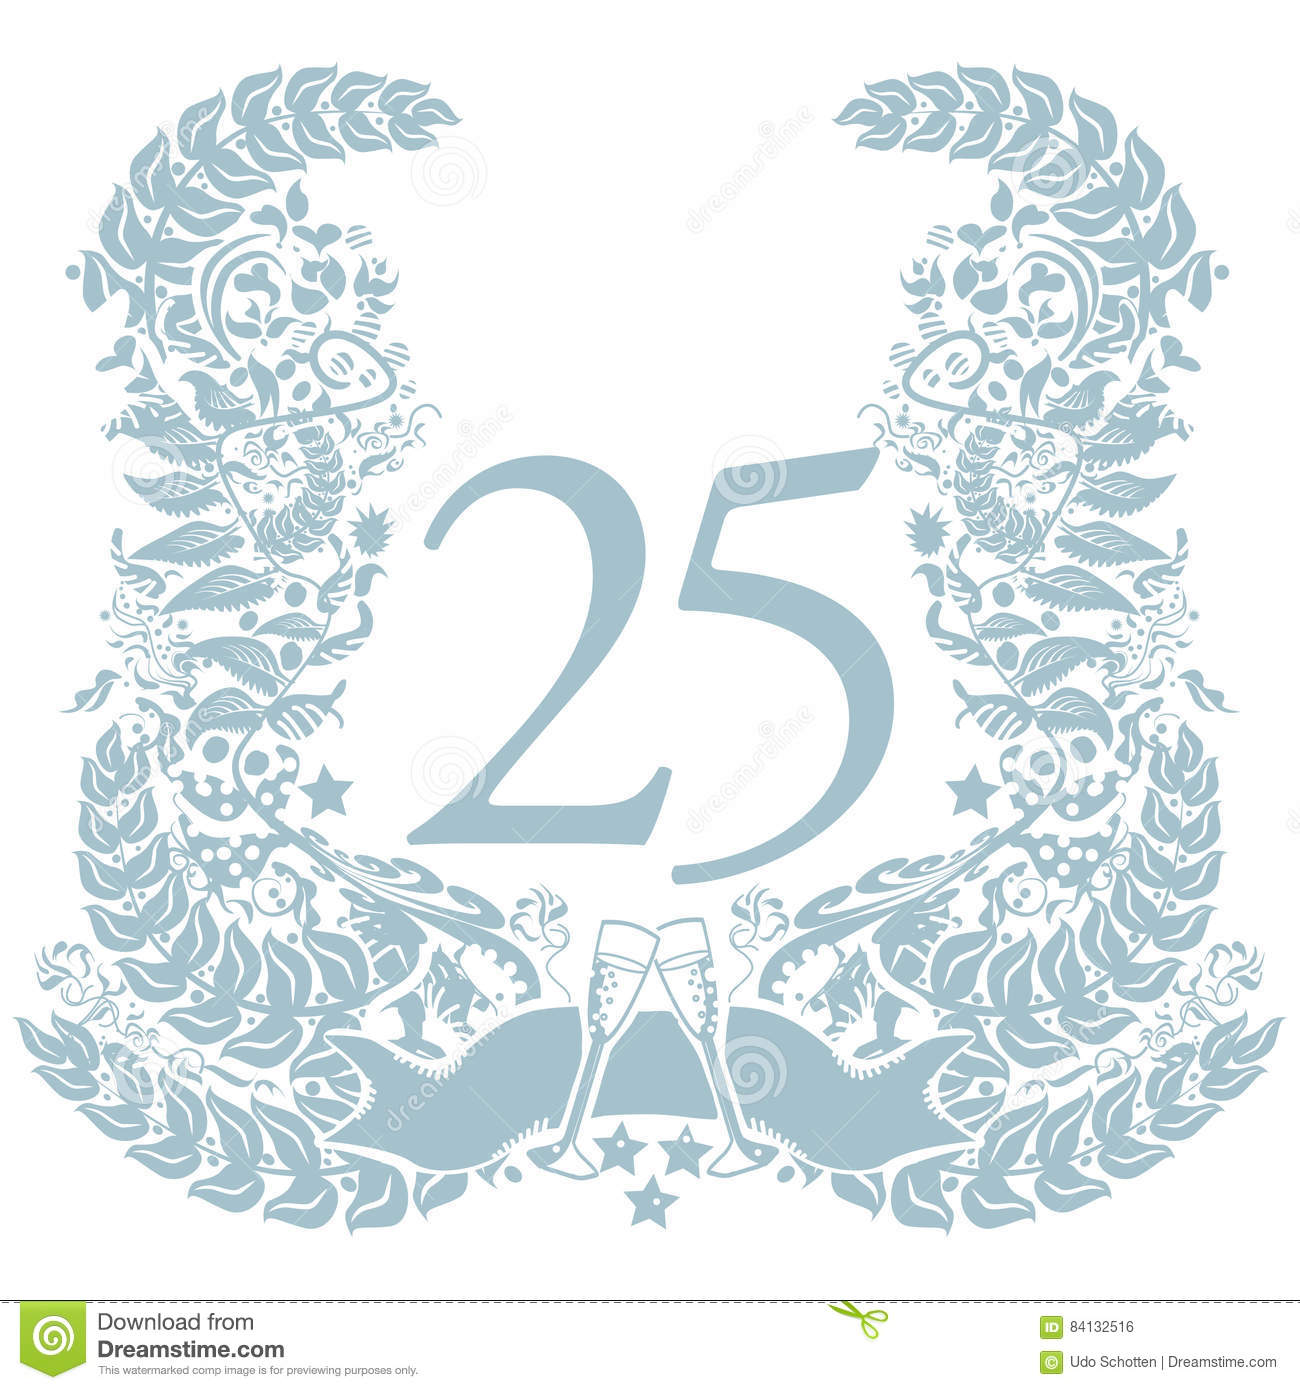 Vignette with 25th anniversary